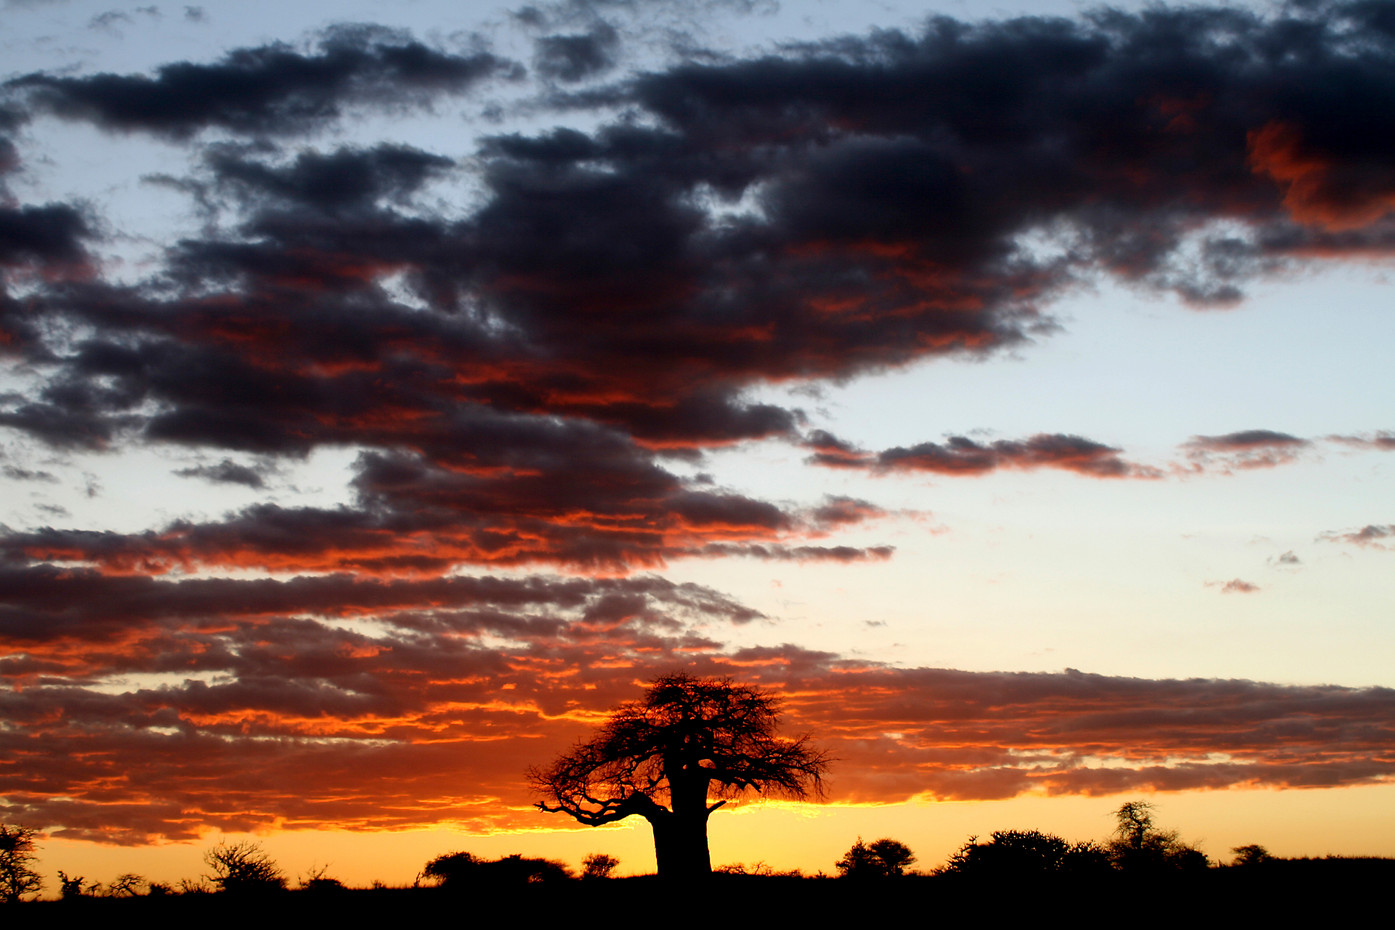 Baobab tree at sunset in Tarangire NP, Tanzania